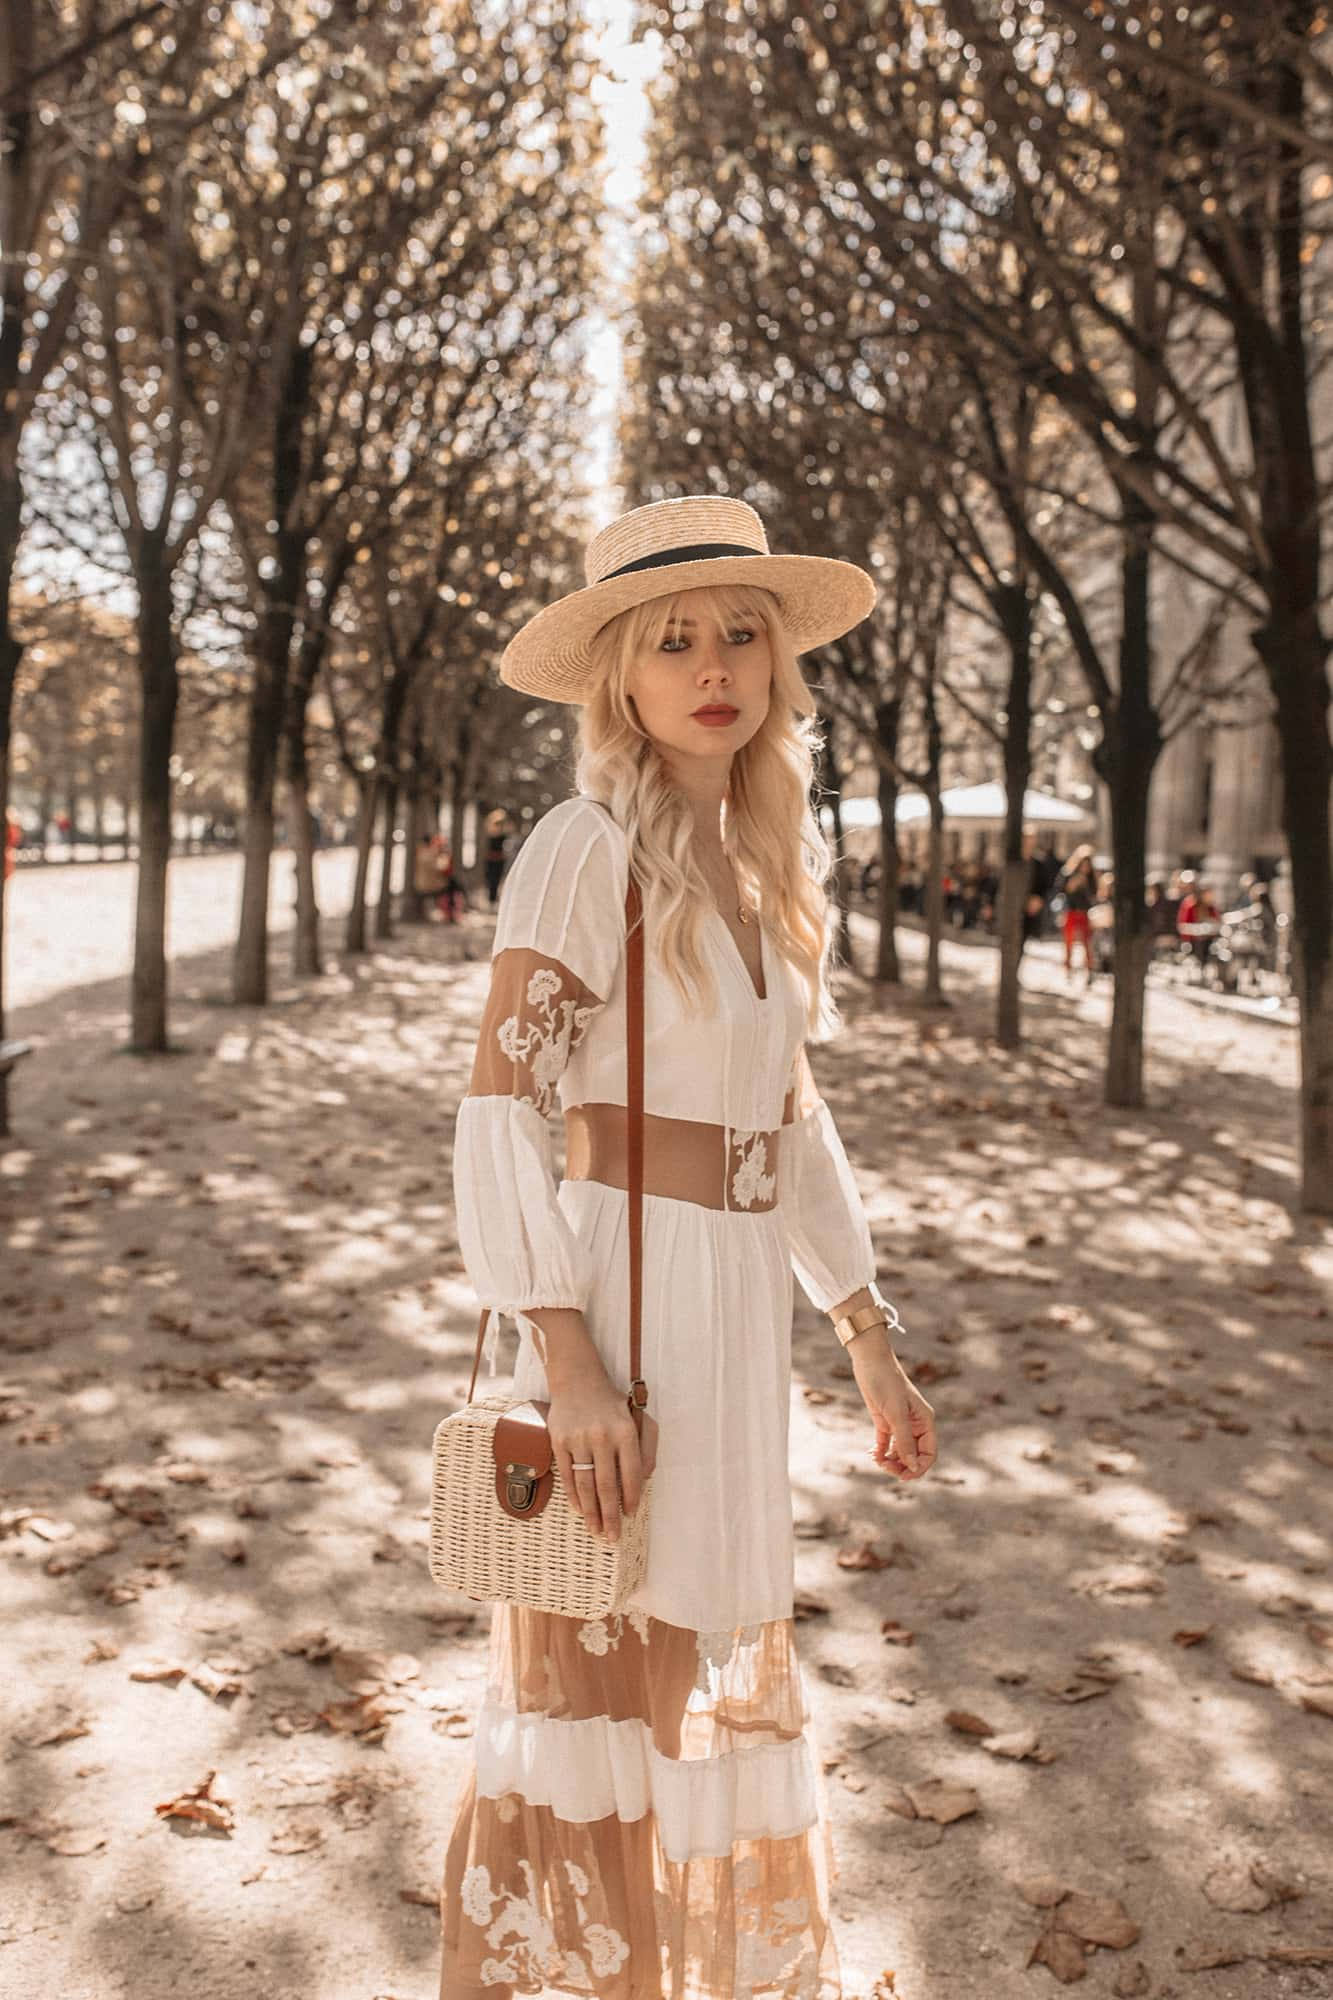 French style, boater hat, white dress